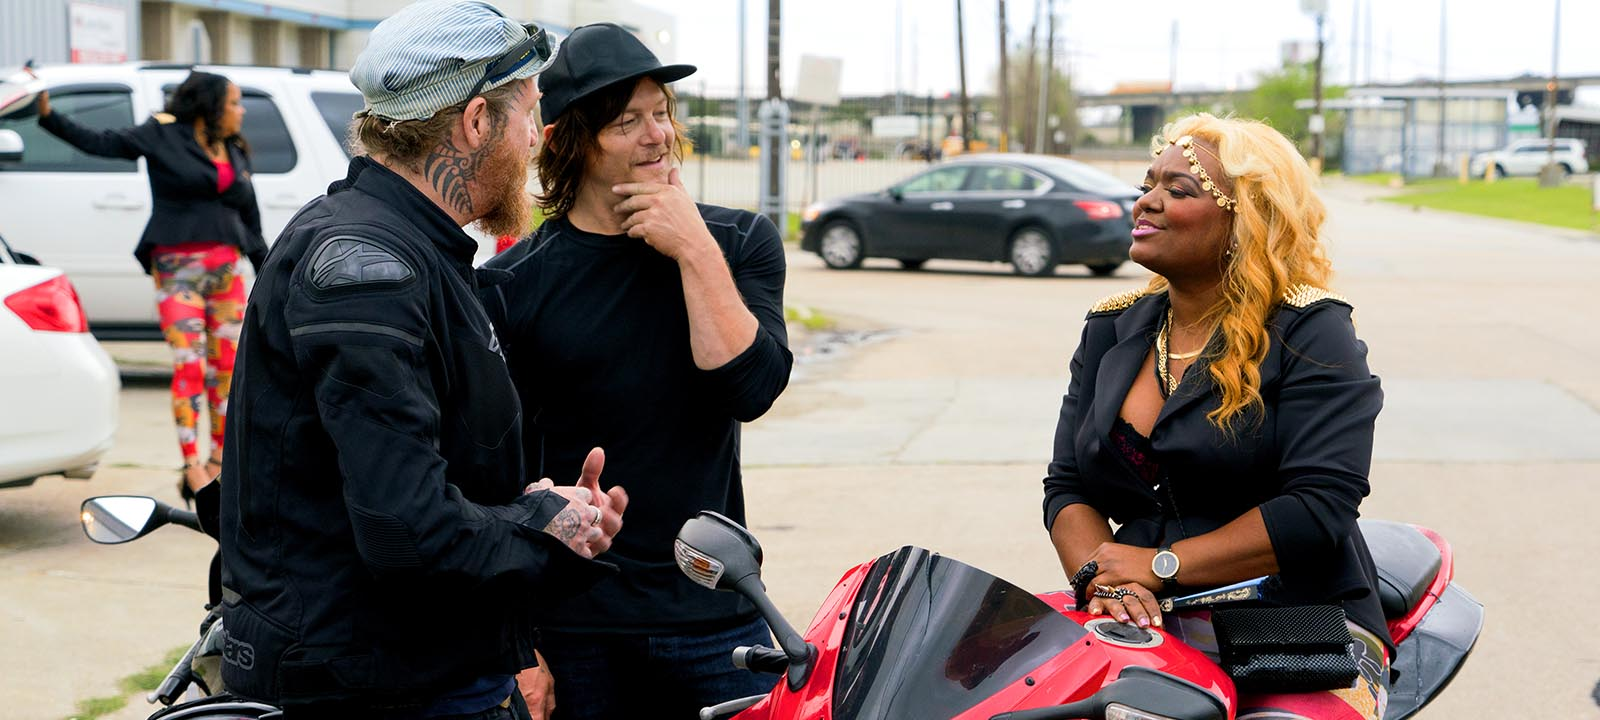 ride-with-norman-reedus-105-Coco-Q&A-800×600